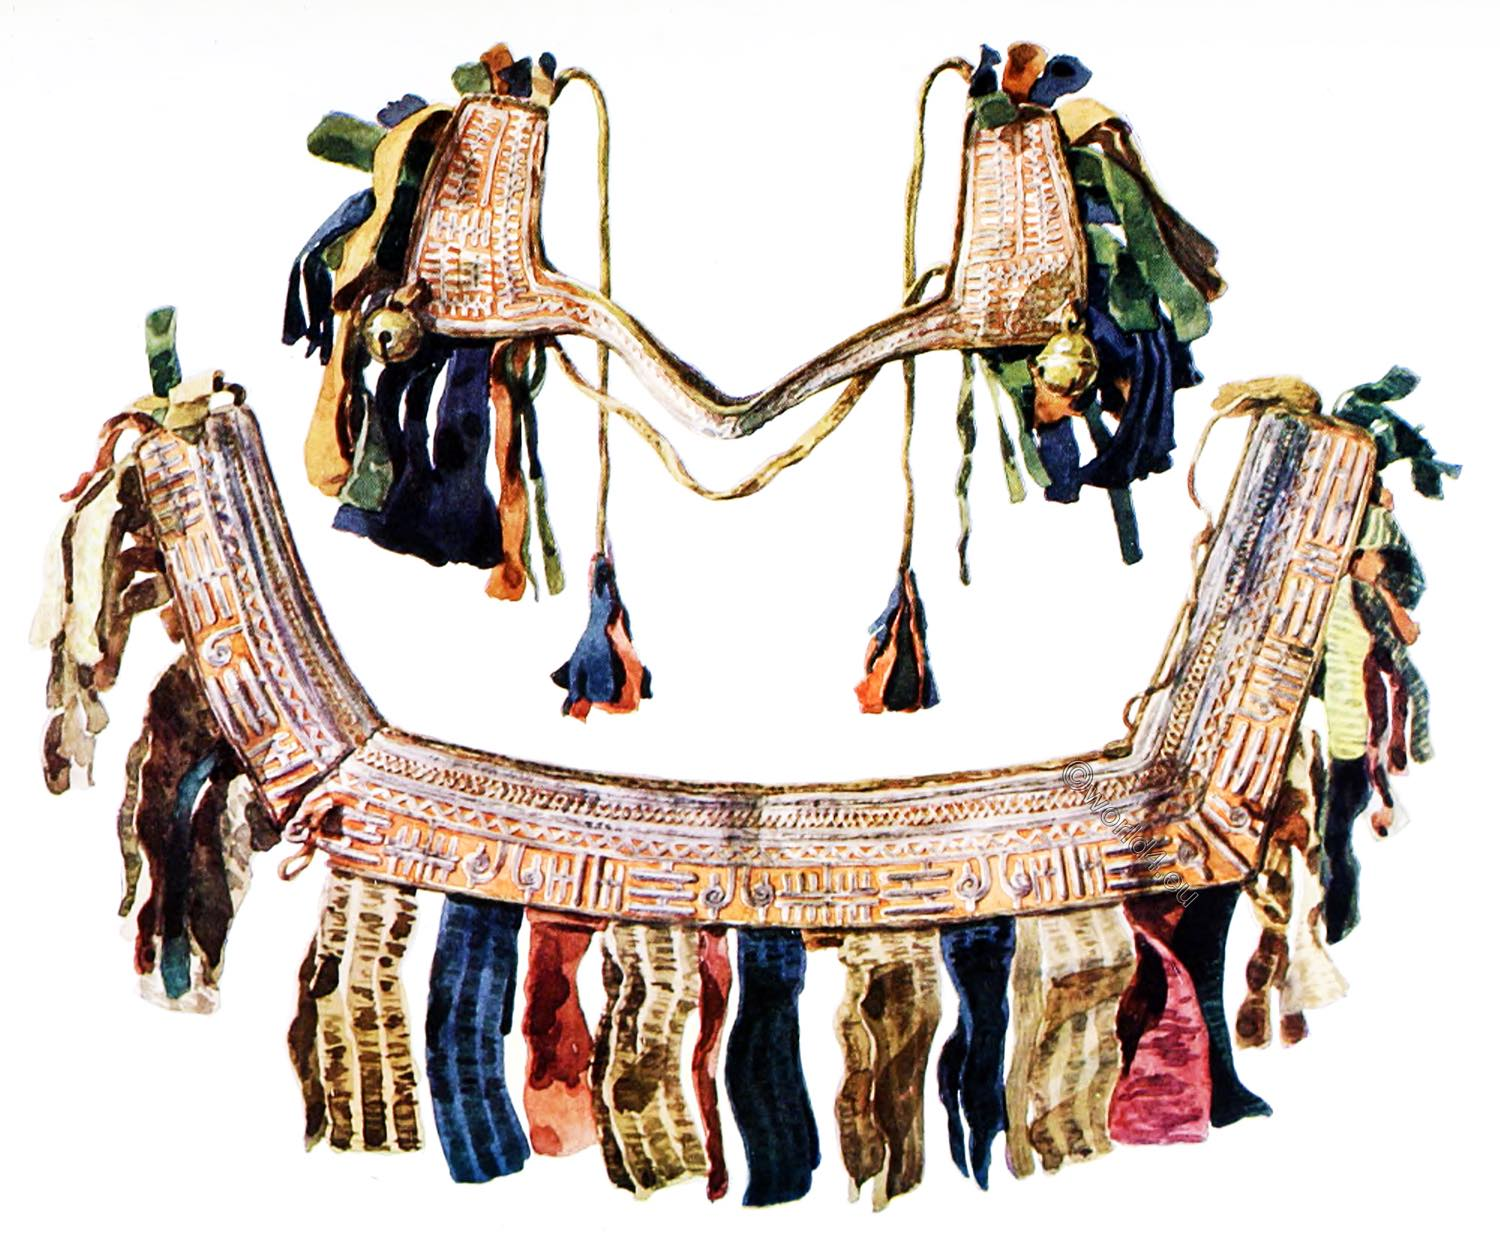 Lapland, Embroidered, reindeer, harness, sami, lapps, crafts, antiquity.